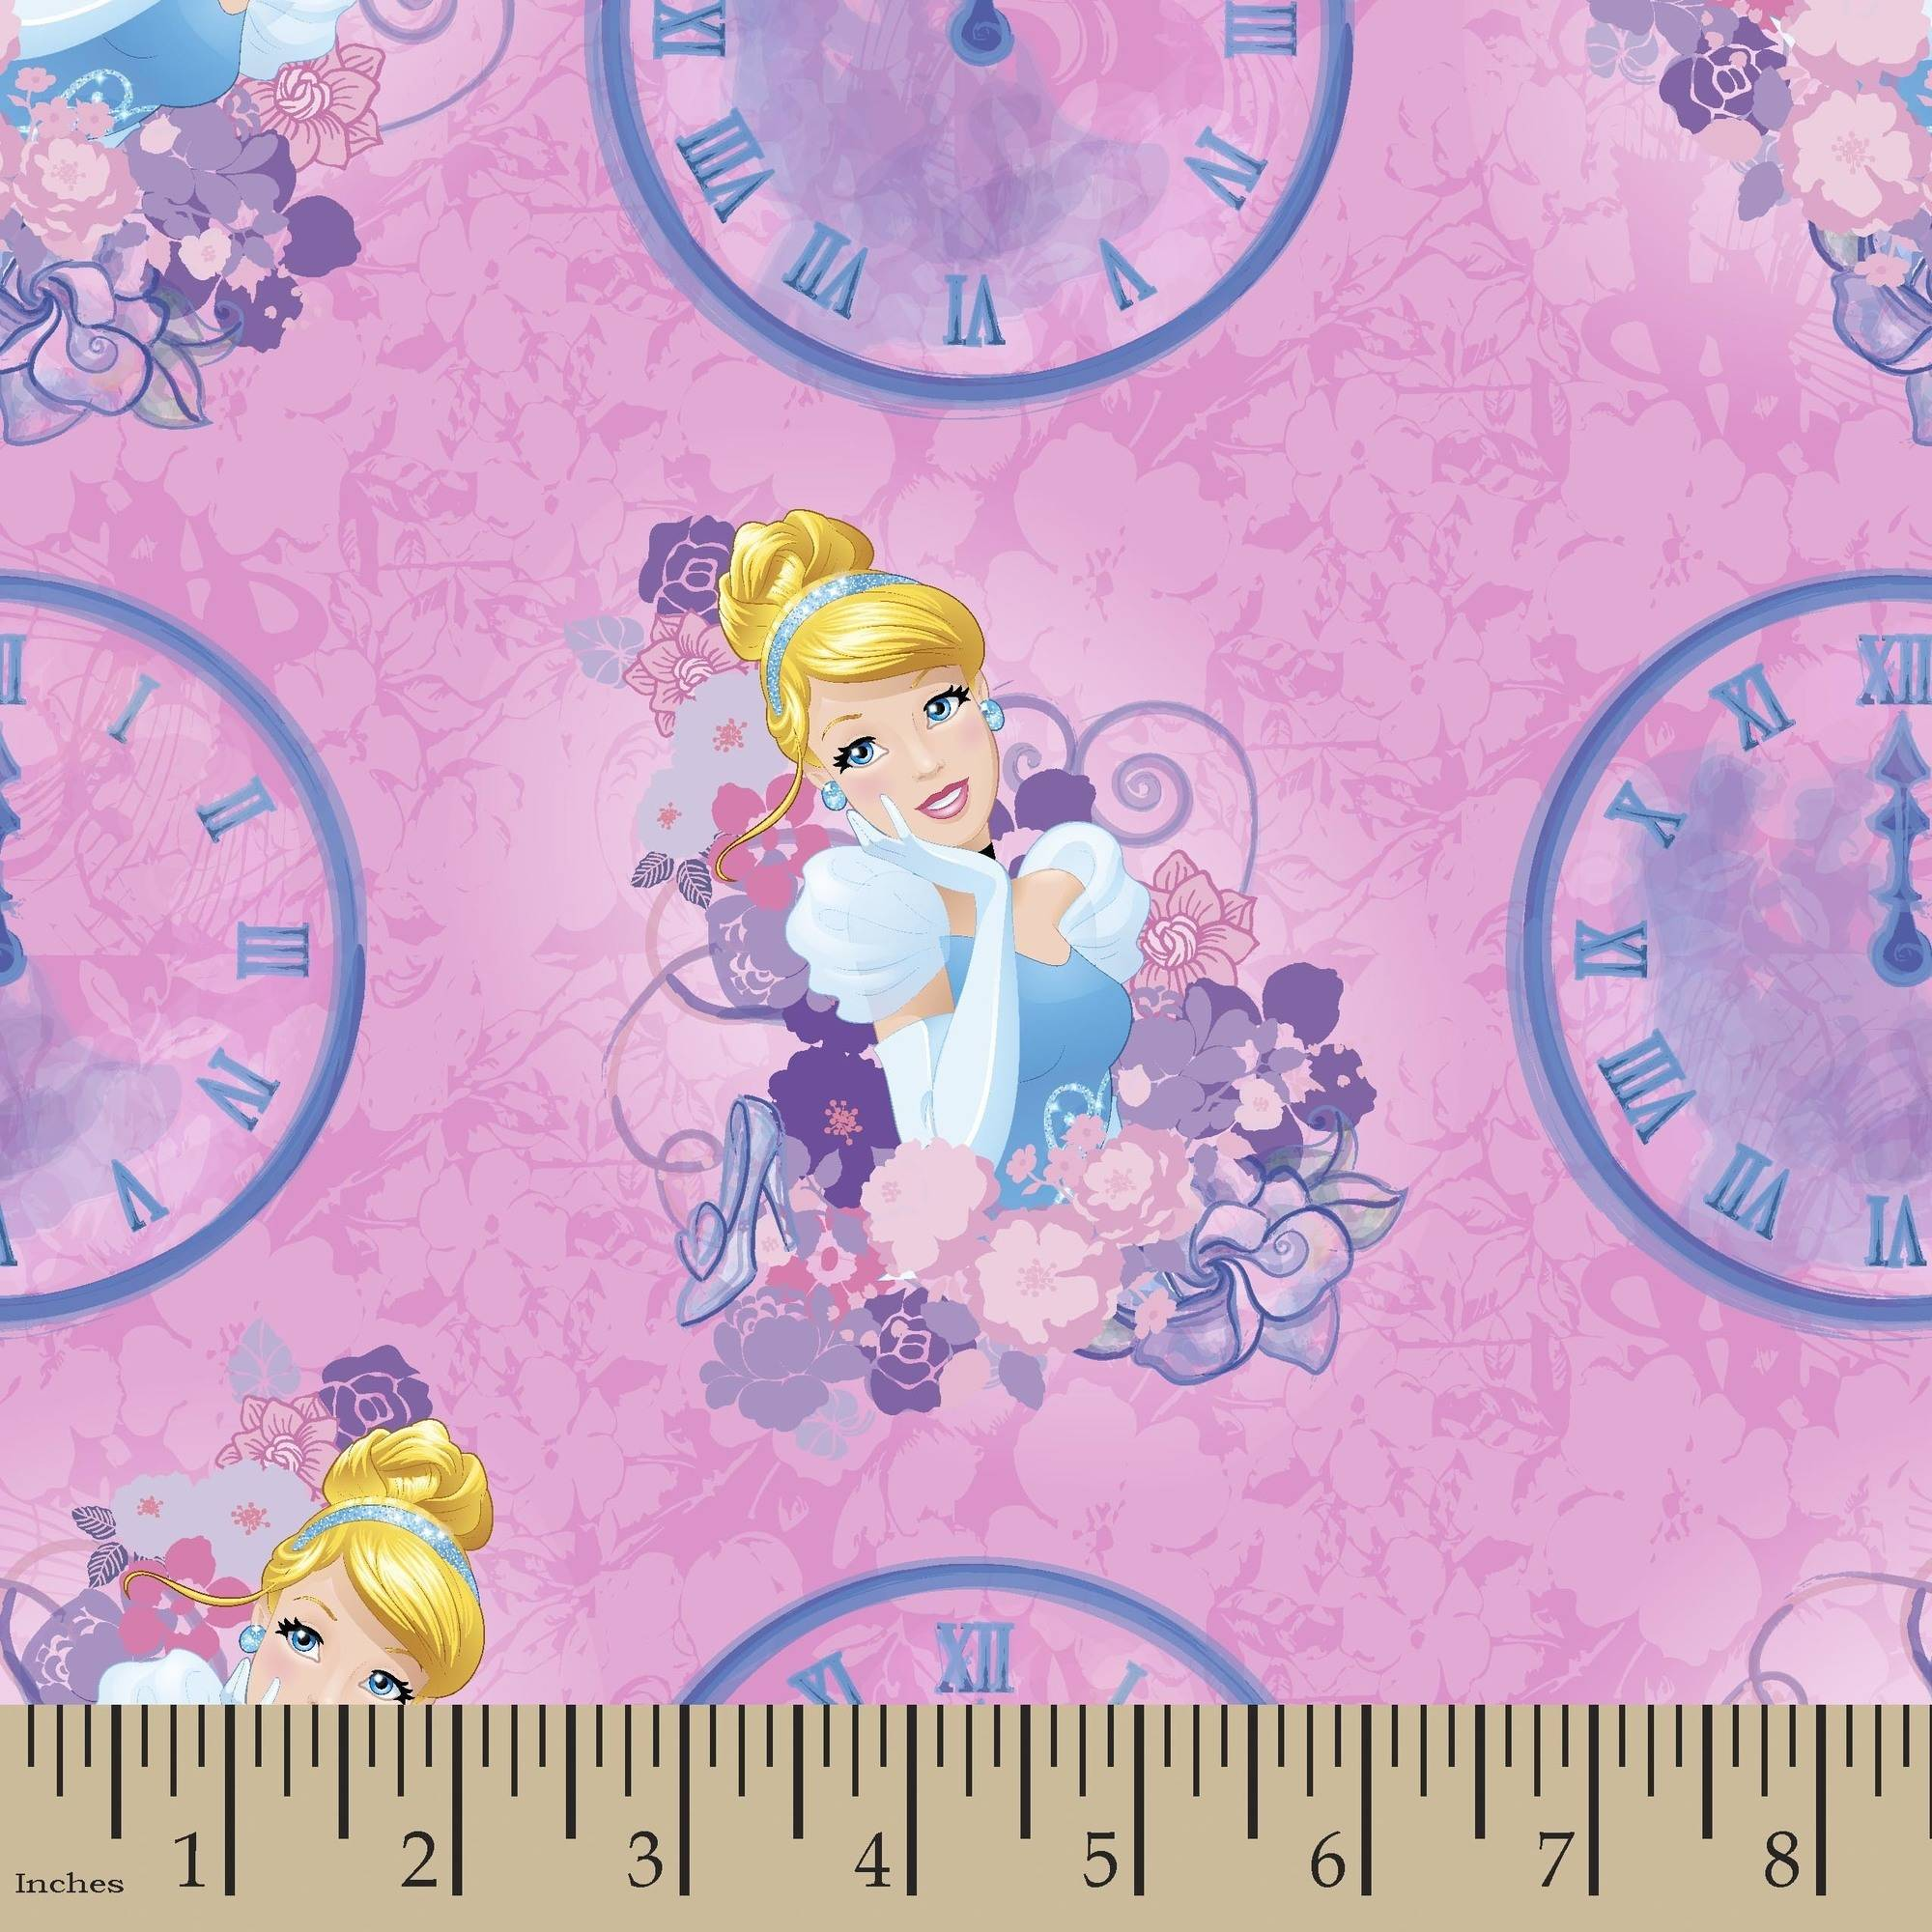 Disney Princess Cinderella Clocks 43/44 Fabric by the Yard